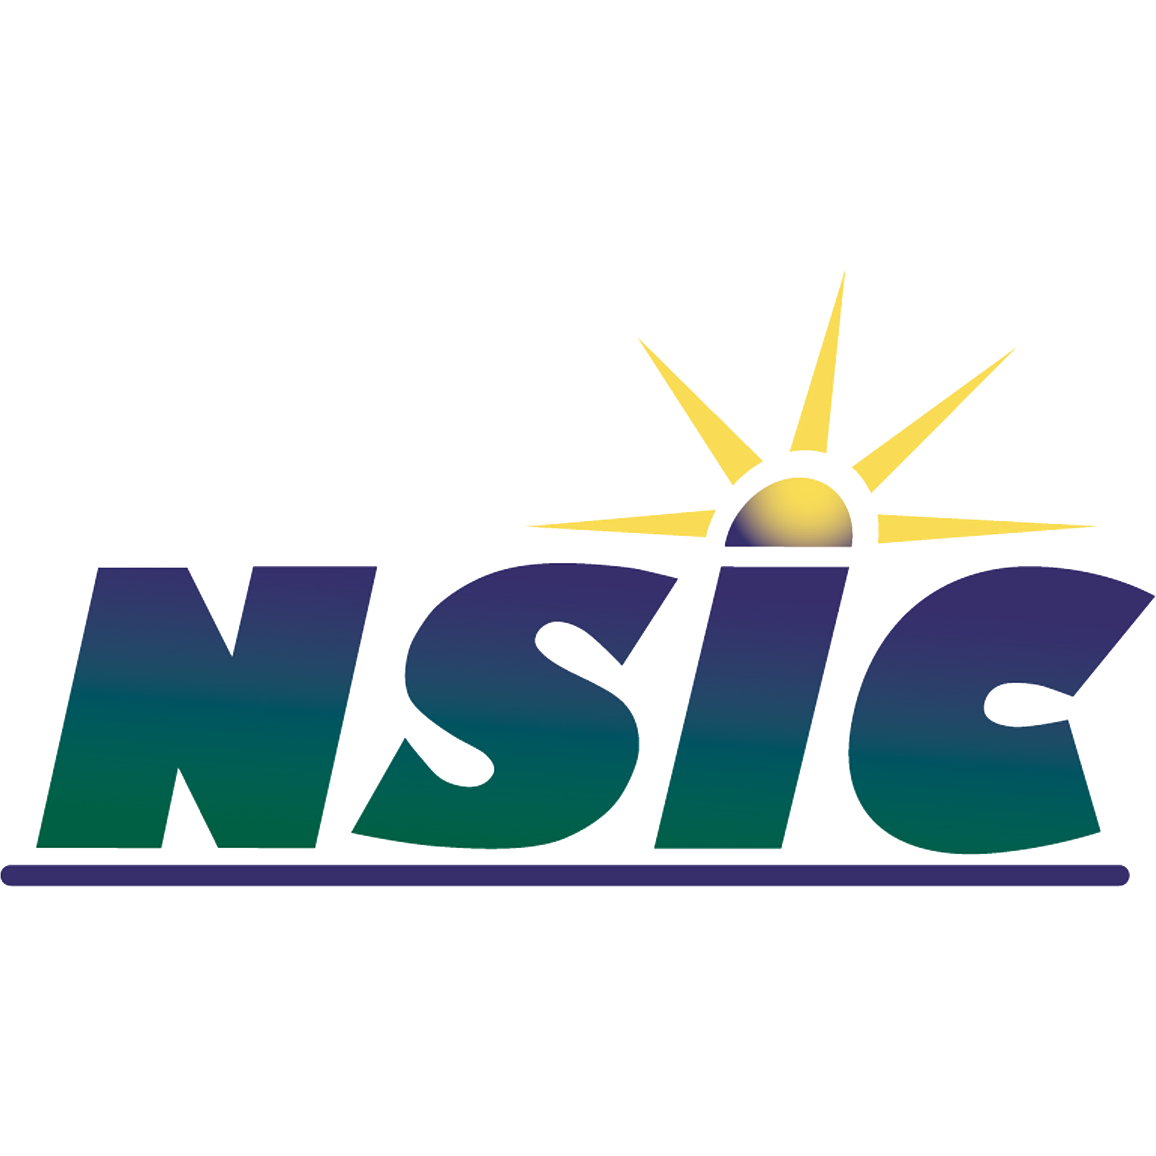 Suns basketball clipart banner transparent download Northern Sun Intercollegiate Conference Womens Basketball - HERO Sports banner transparent download